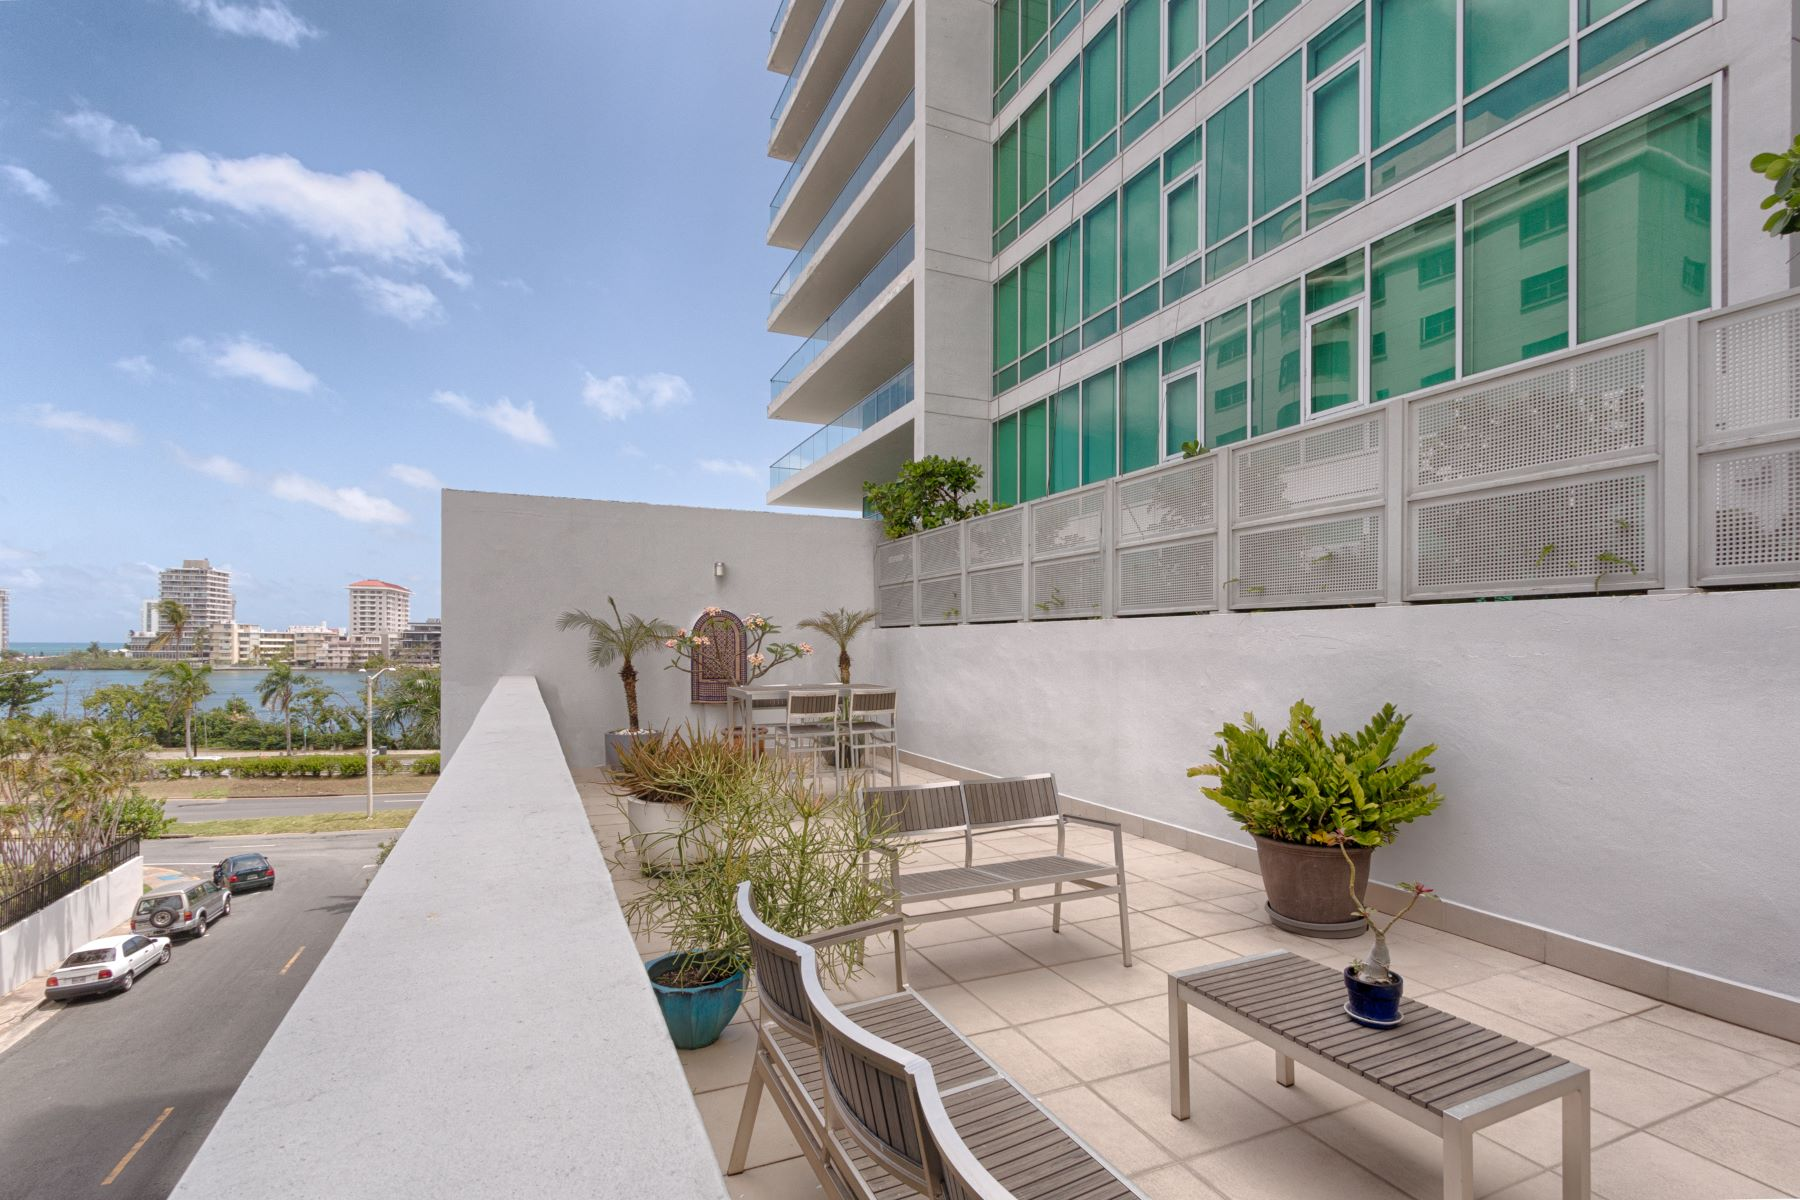 Additional photo for property listing at Mid Century Modern Duplex at Cosmopolitan 555 Calle Monserrate TH 102 San Juan, Puerto Rico 00907 Puerto Rico